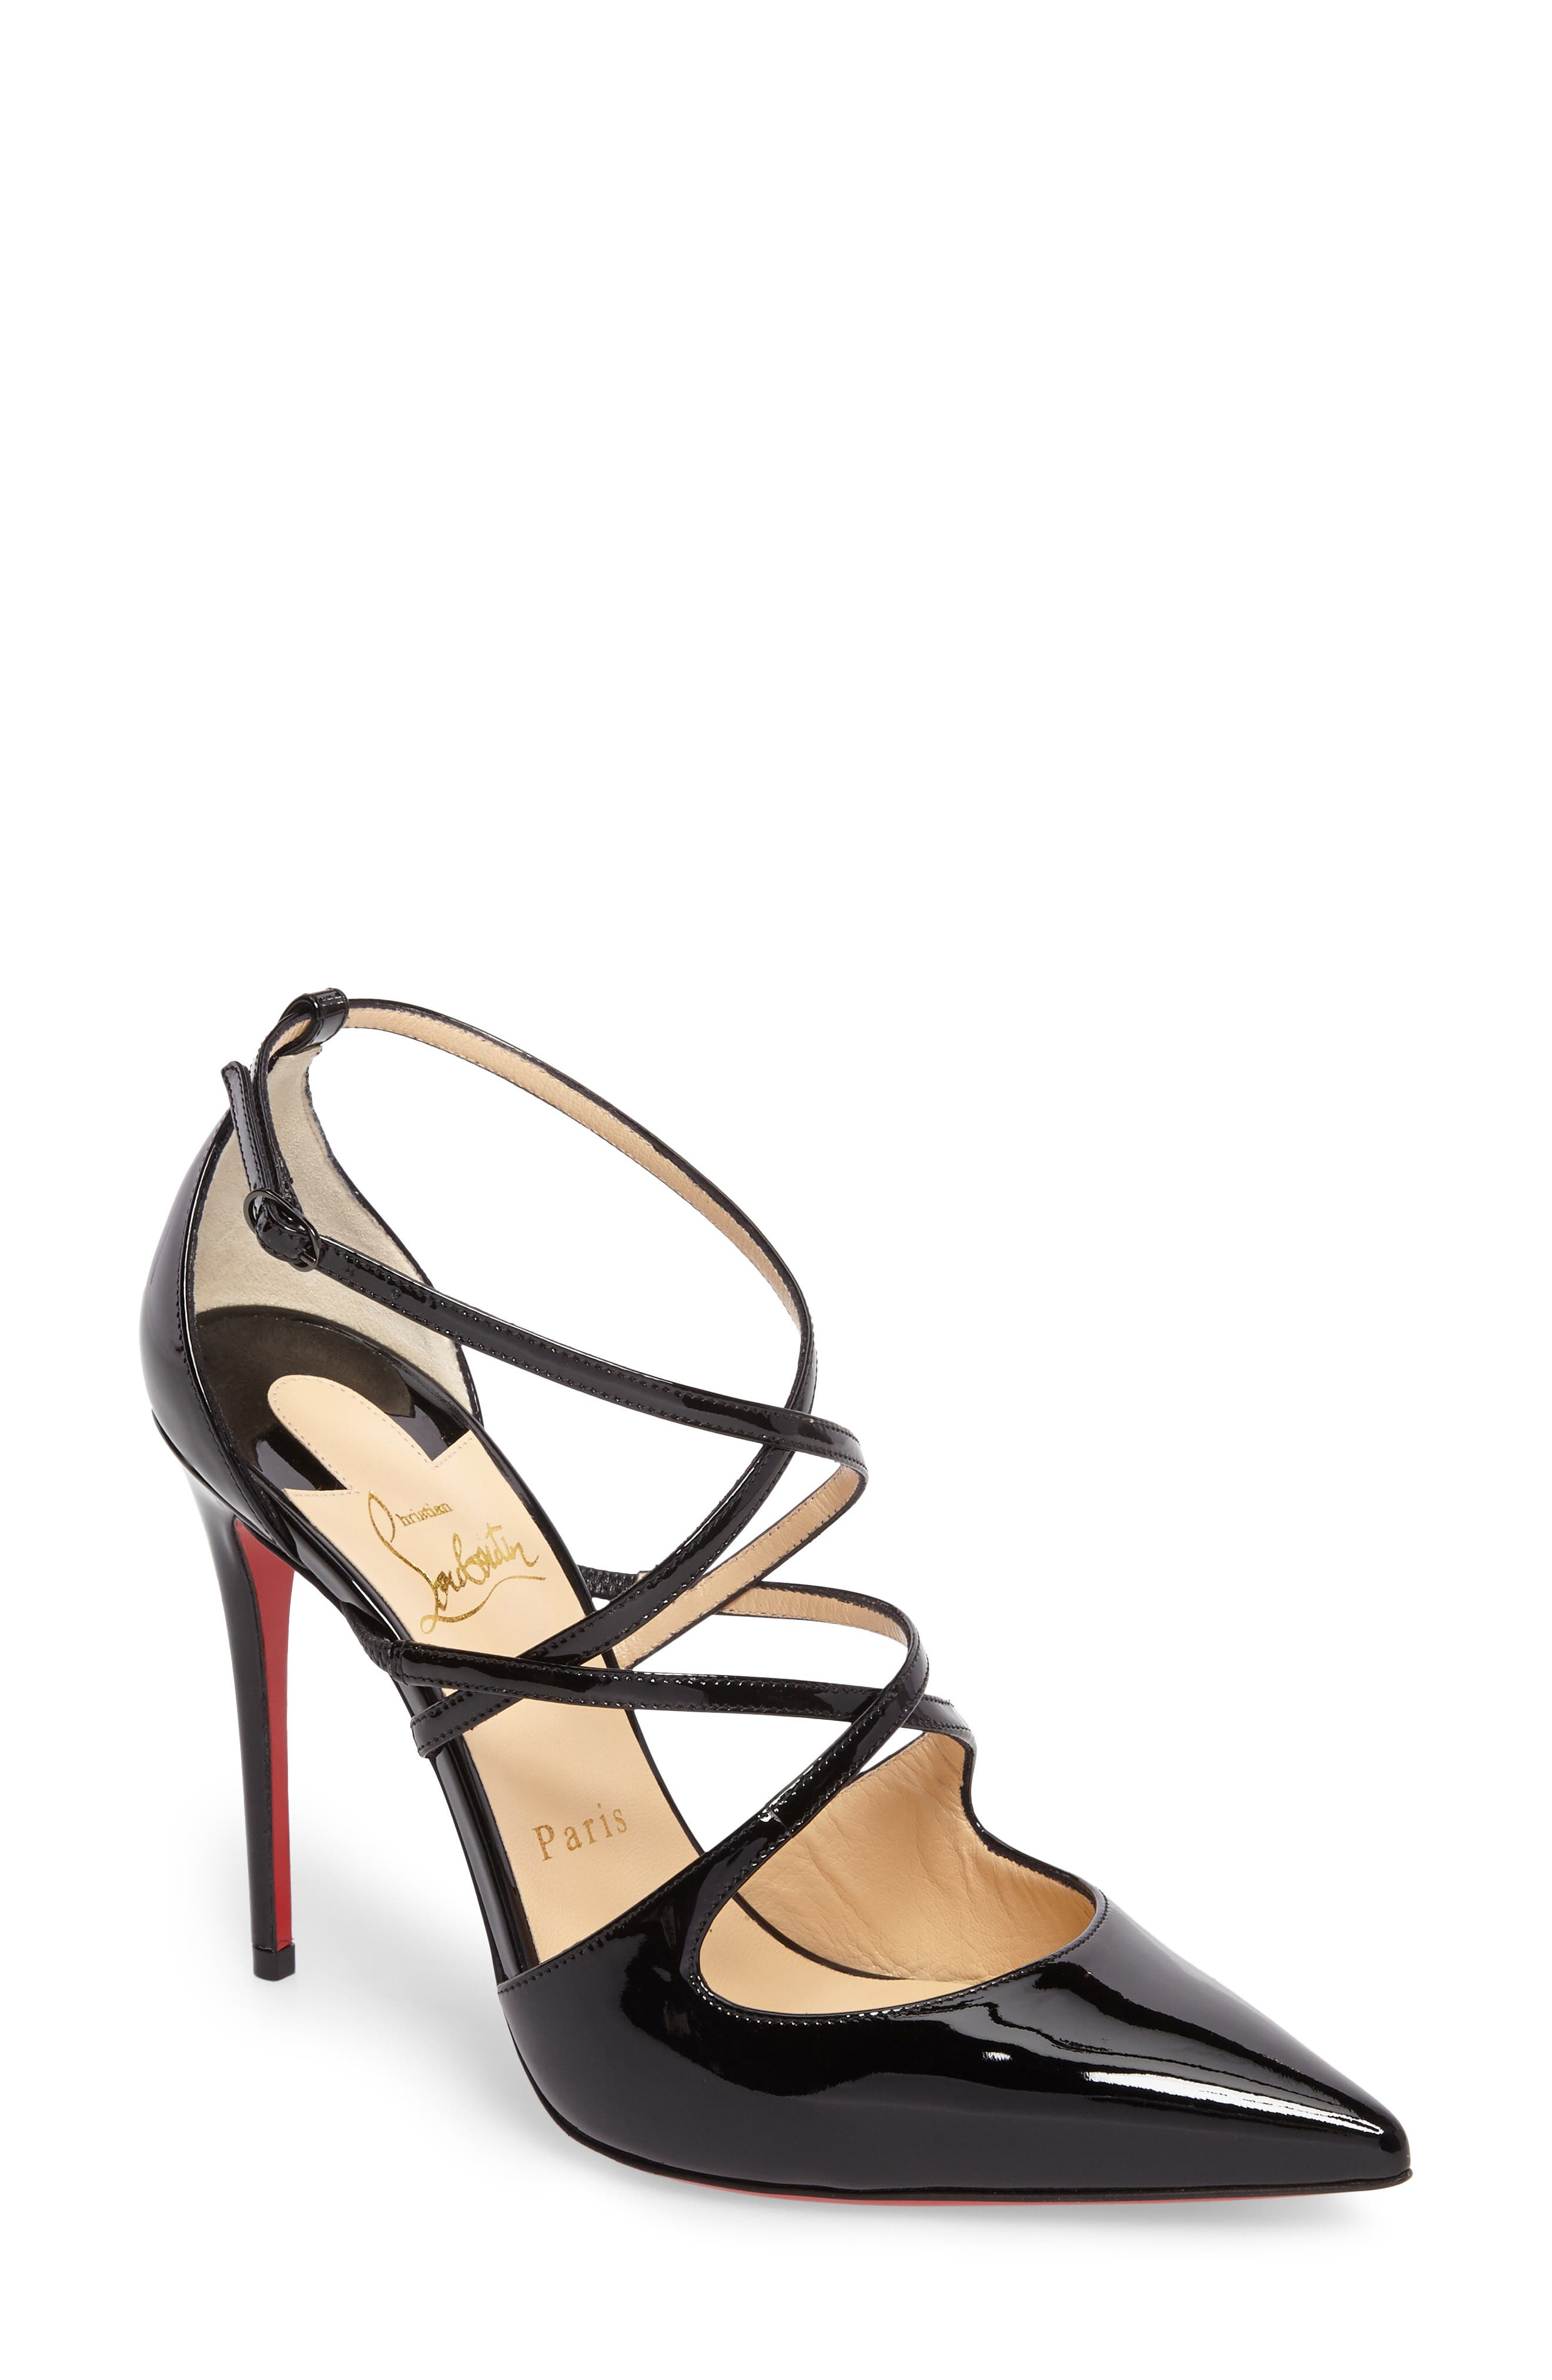 CHRISTIAN LOUBOUTIN, Crossfliketa Pump, Main thumbnail 1, color, 001